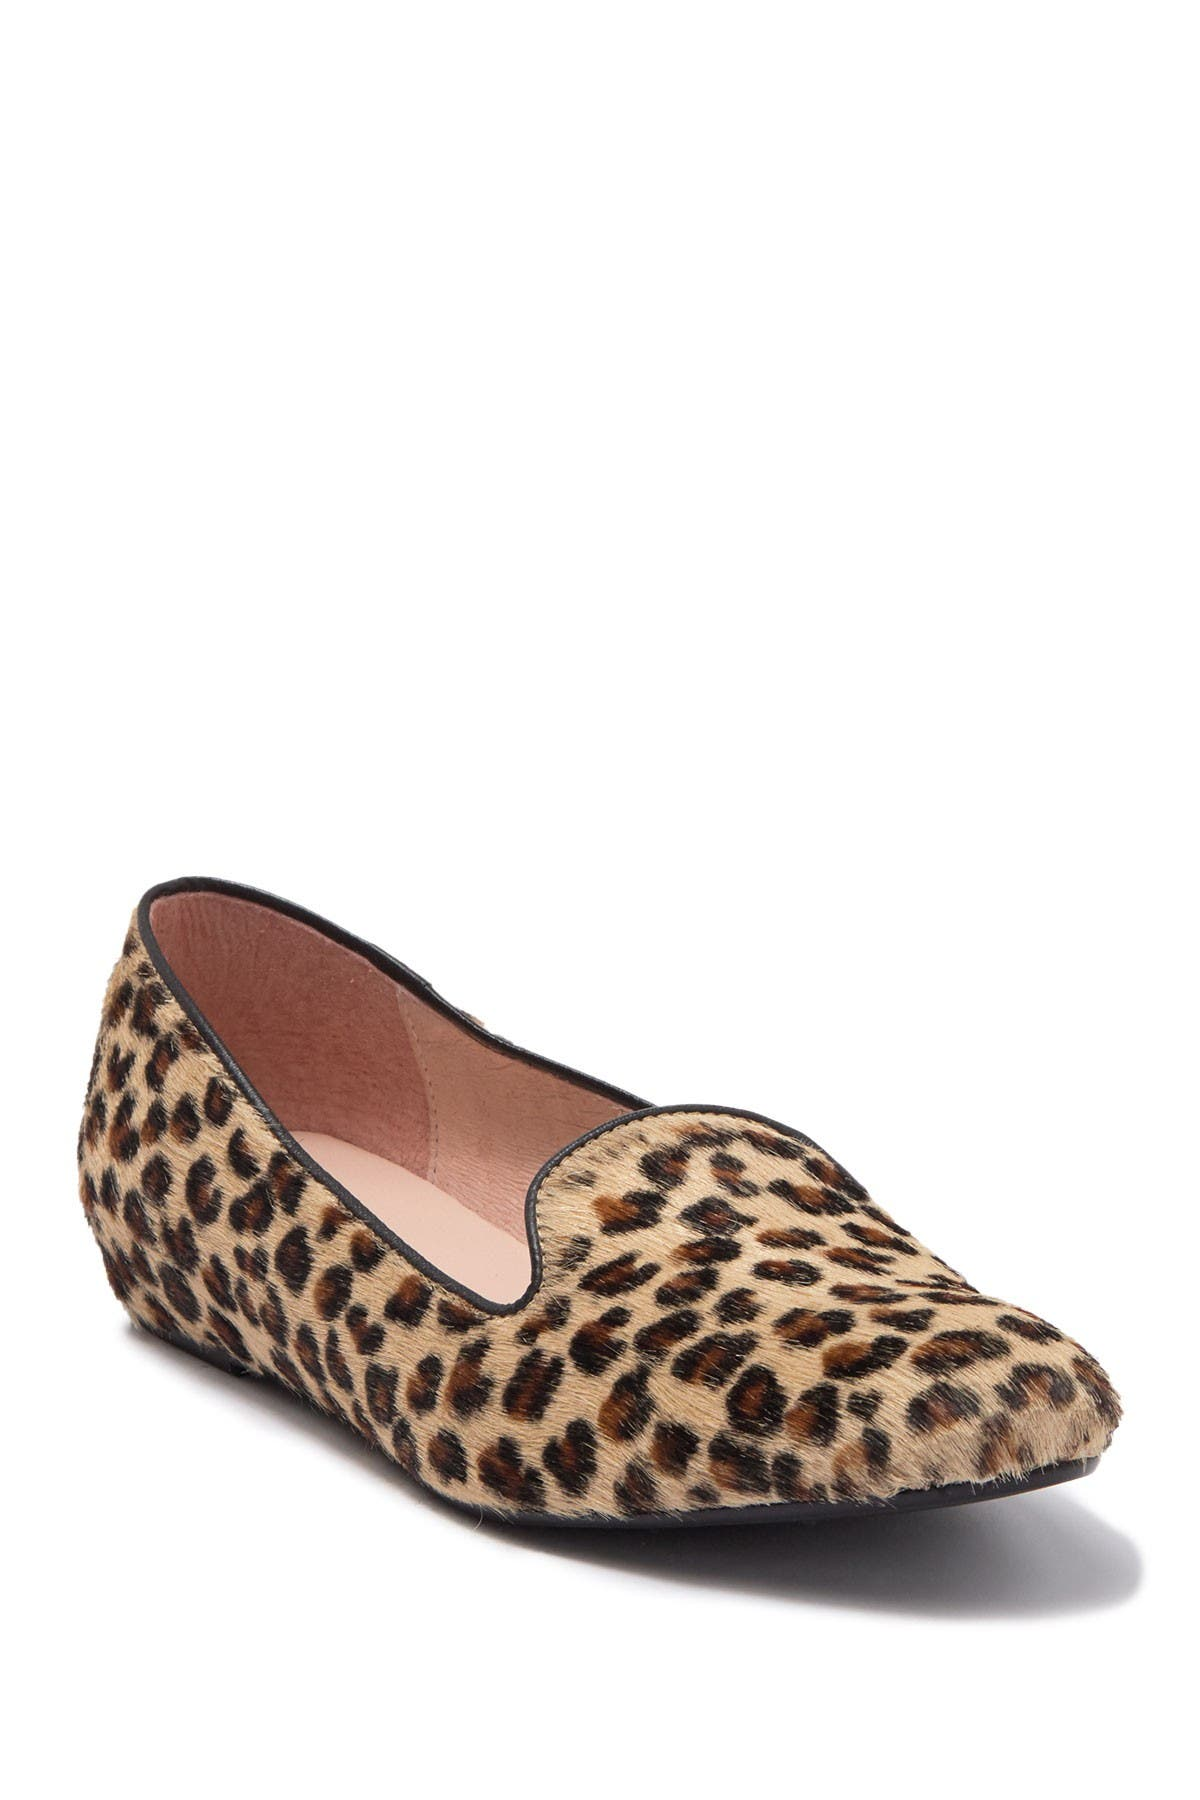 Image of Patricia Green Waverly Loafer Flat